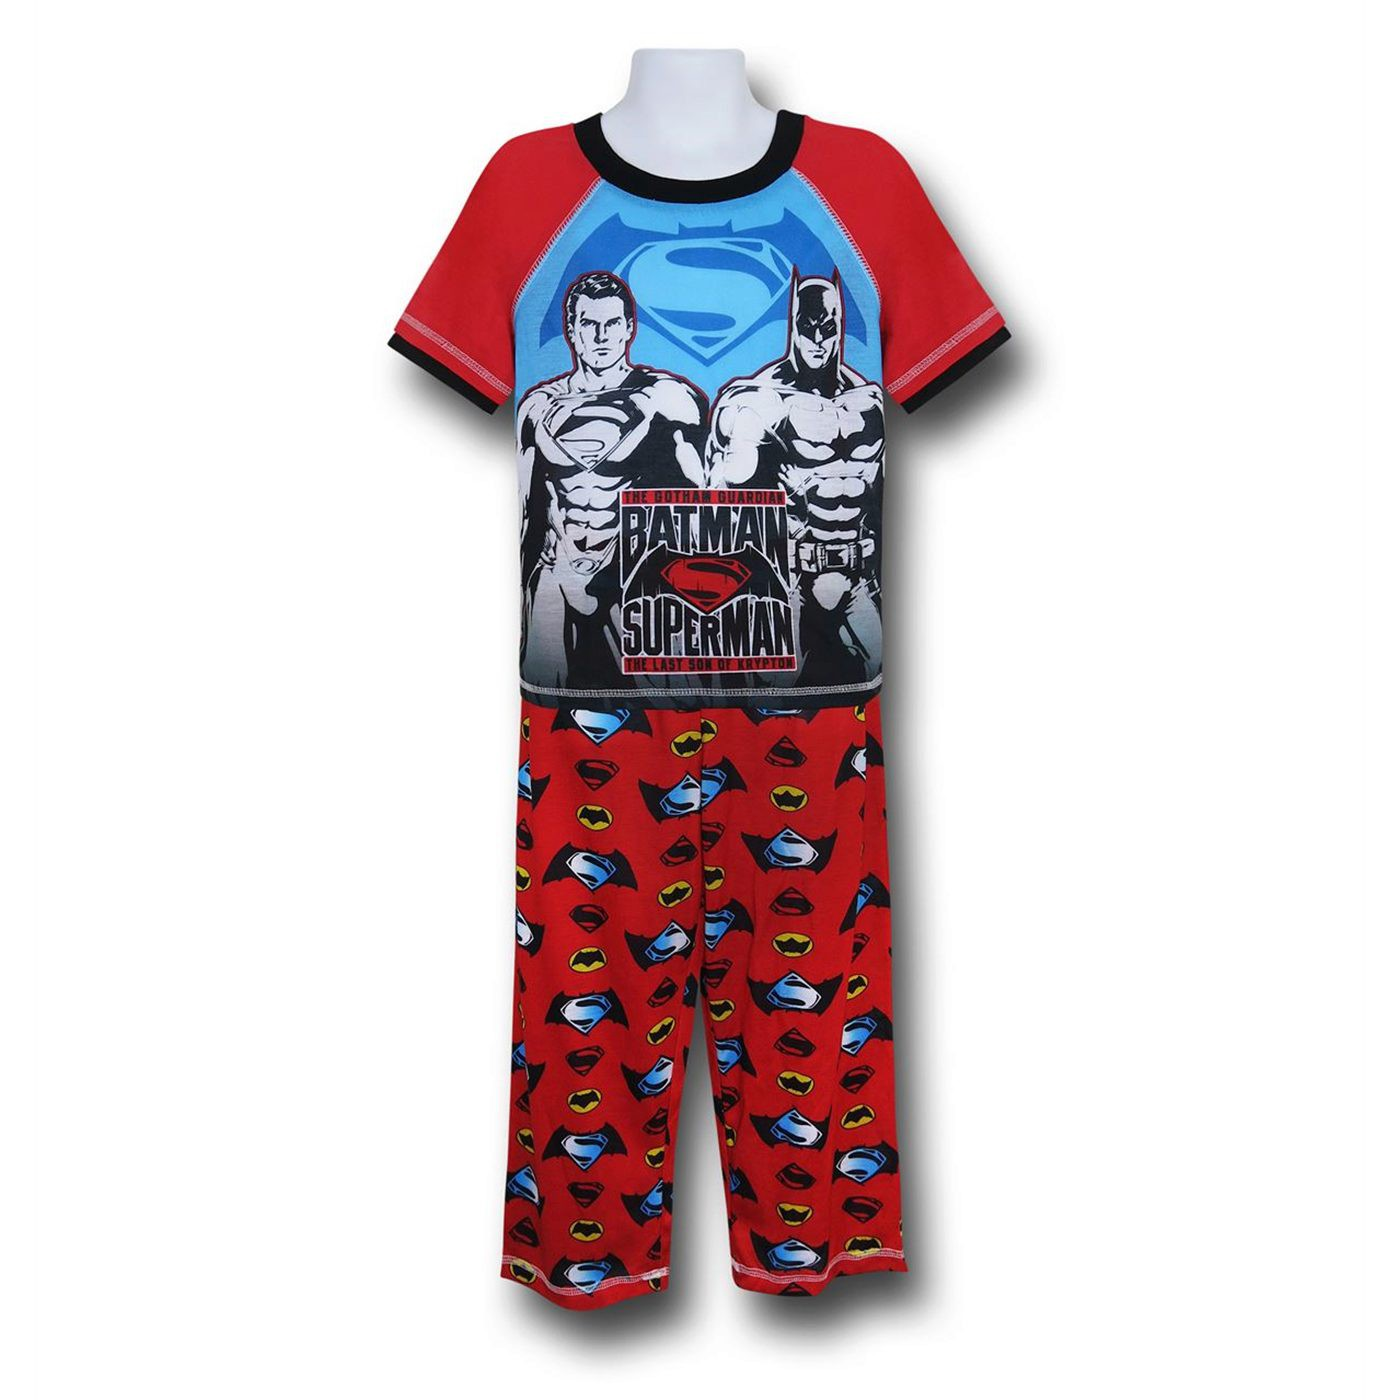 Batman Vs Superman Kids Red Pajama Set